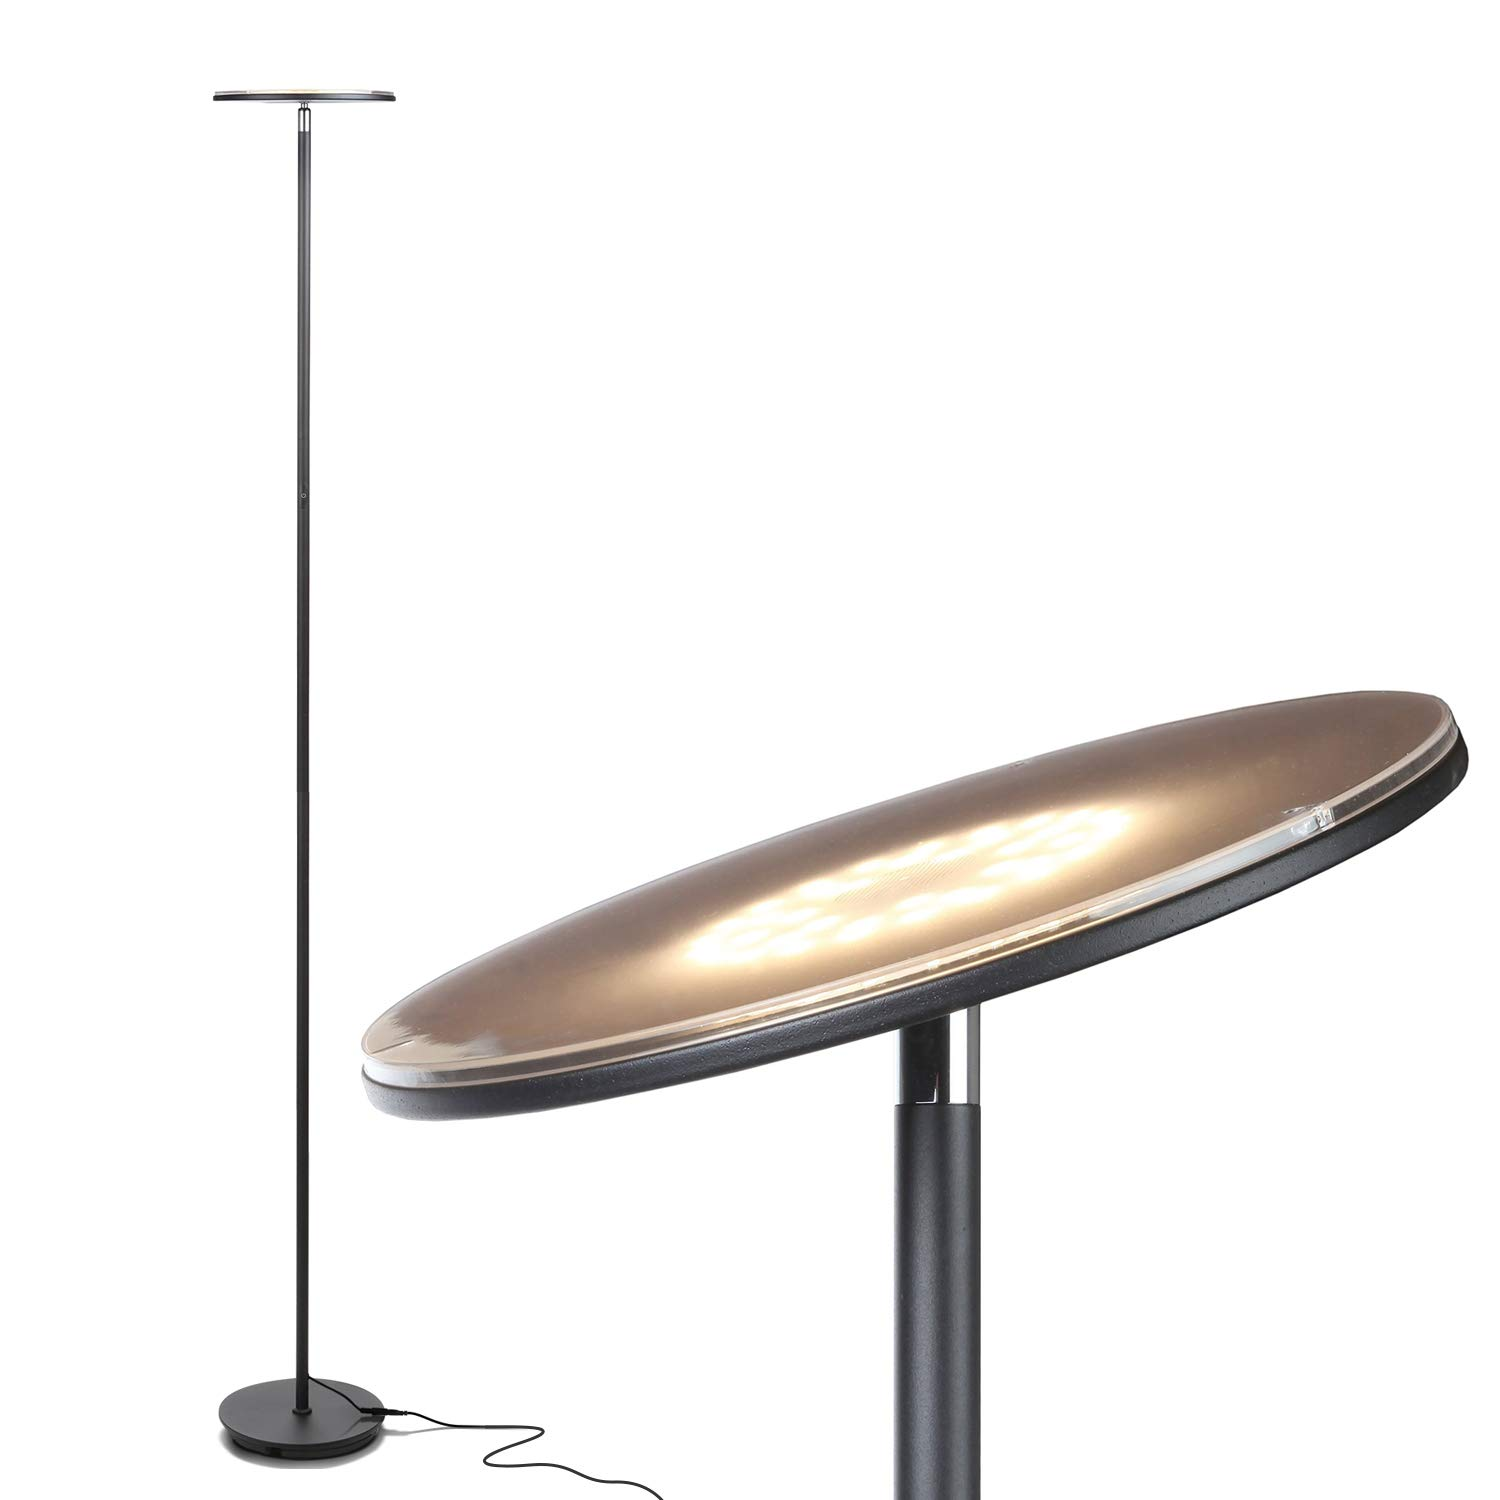 Brightech Sky LED Torchiere Super Bright Floor Lamp – Tall Standing Modern Pole Light for Living Rooms Offices – Dimmable Uplight for Reading Books in Your Bedroom etc – Black